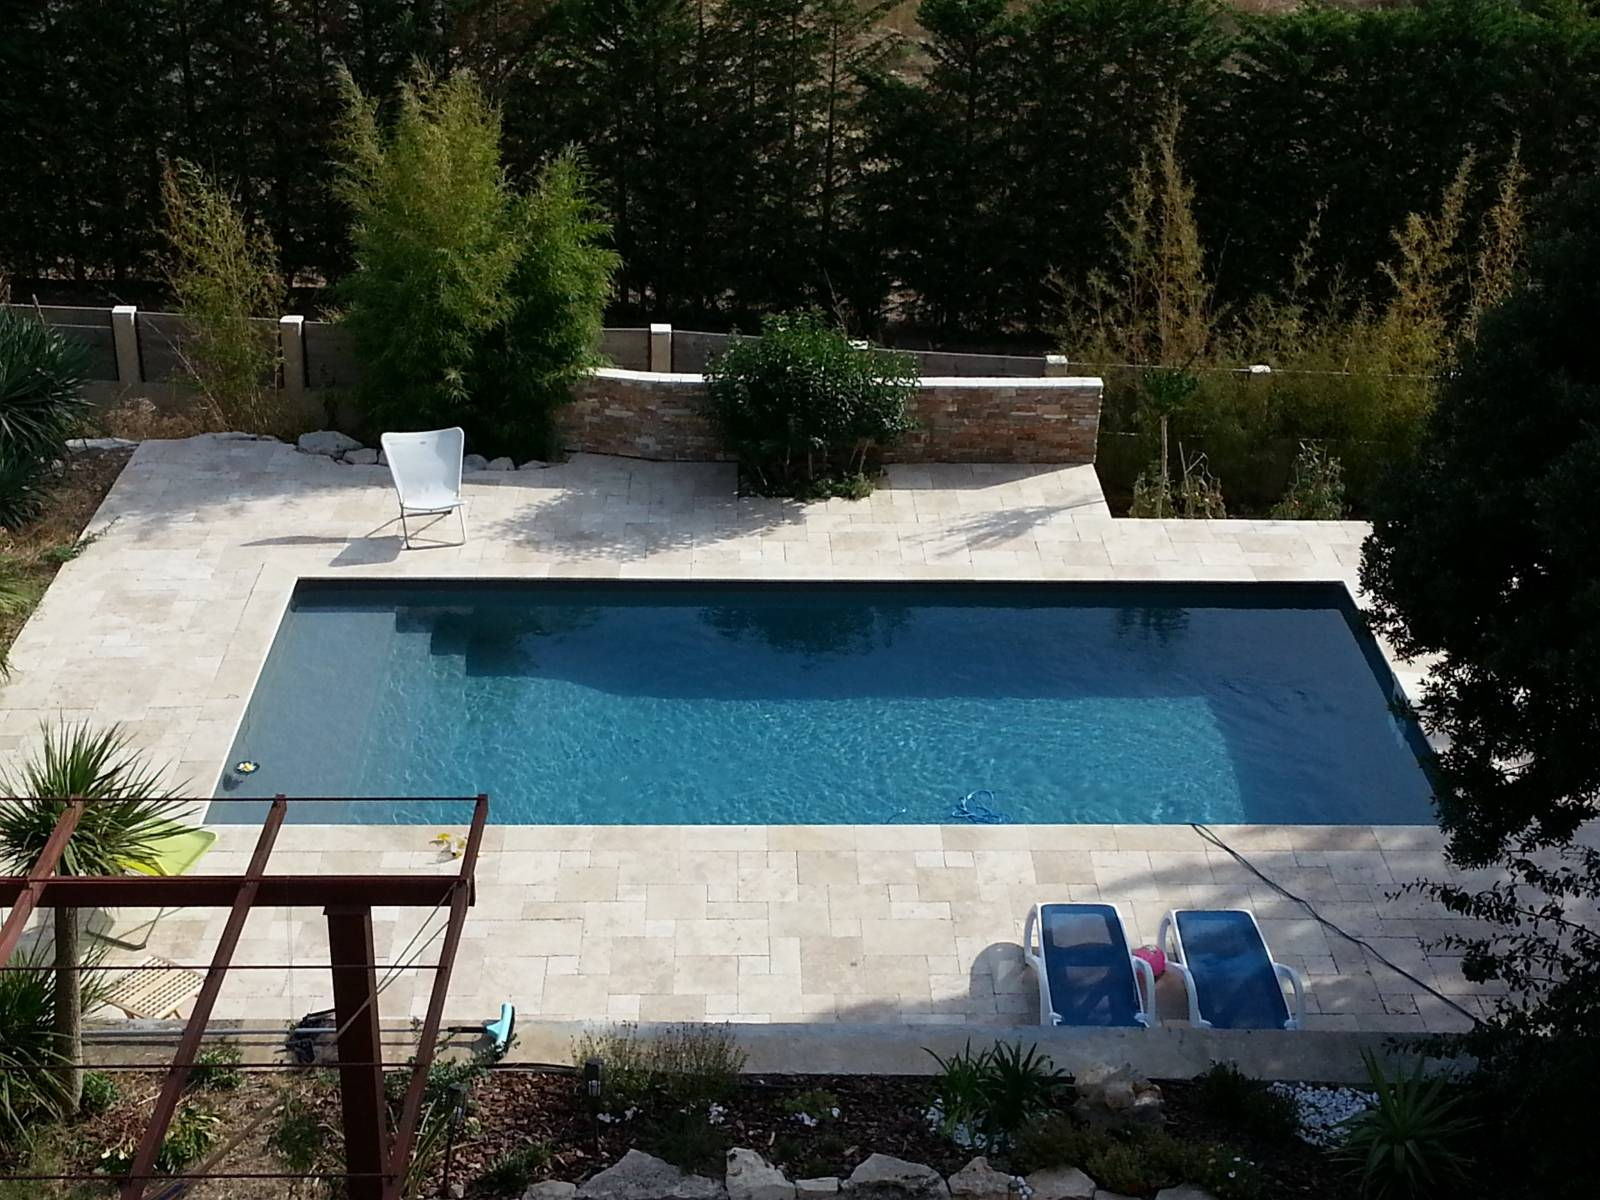 Piscine 9X4M Rectangulaire Gris Anthracite Avec Filtration ... destiné Piscine Grise